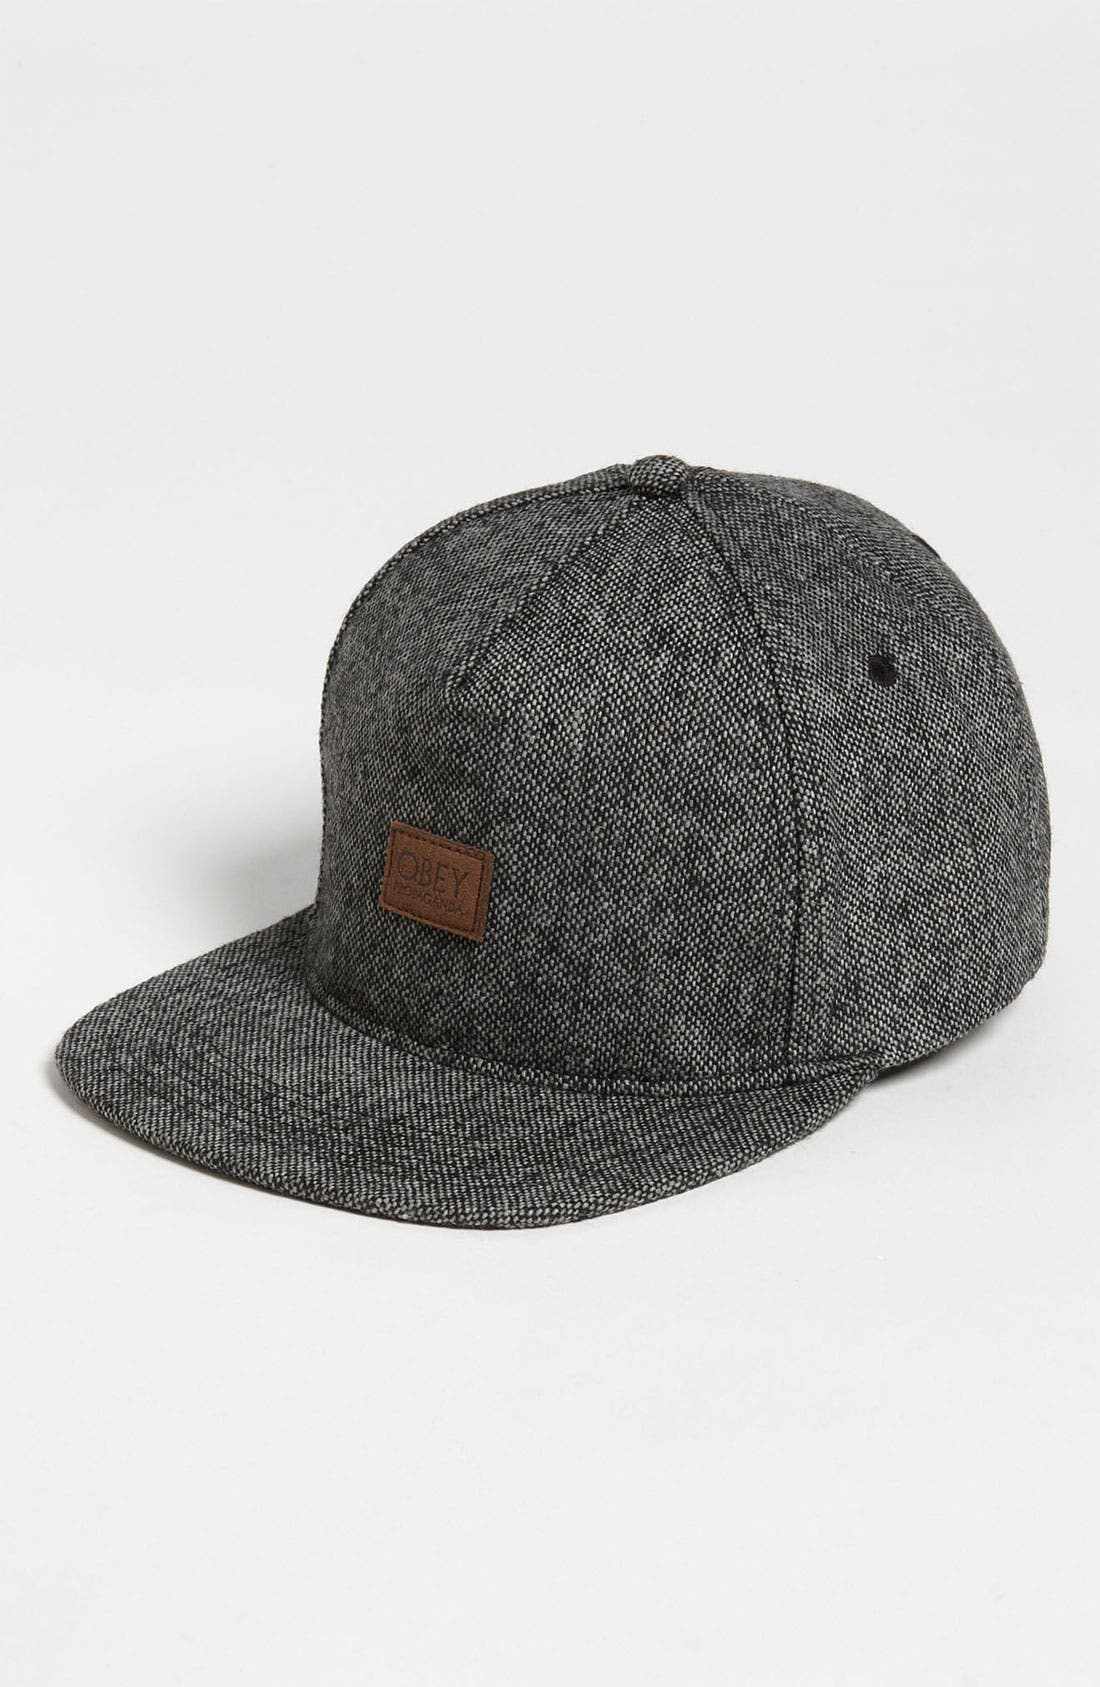 Main Image - Obey 'Outland Luxe' Snapback Baseball Cap